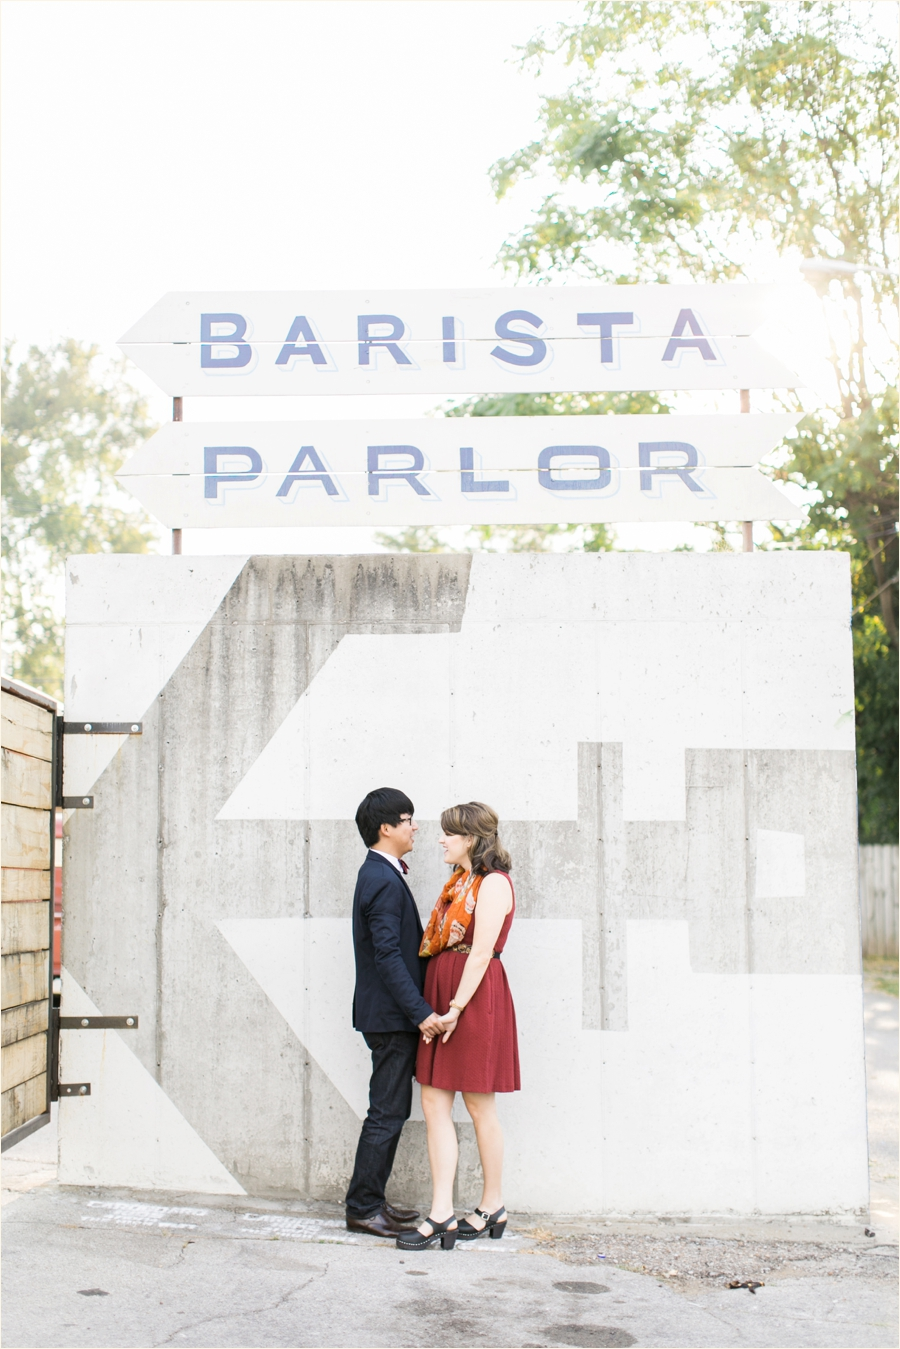 12,adele's,barista,downtown,engaged,engagement,nashville,neighborhood,park,parlor,session,seveir,sevier,south,sunrise,taproom,wedding,